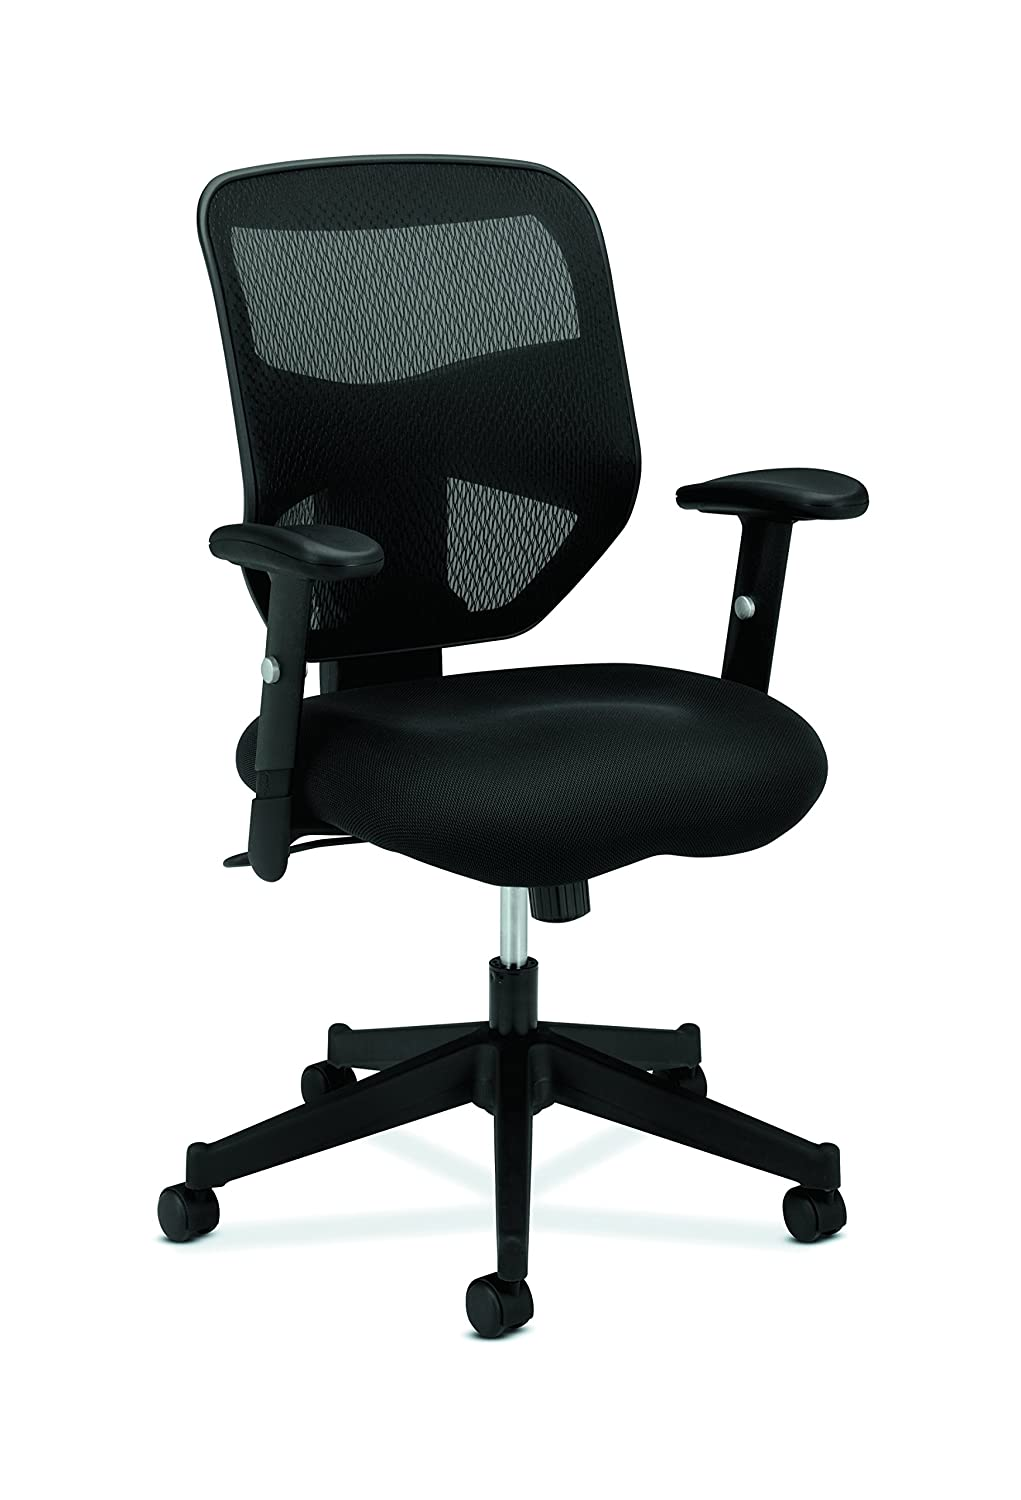 HON Prominent High Back Work Chair - Mesh Computer Chair for Office Desk, Black (HVL531)